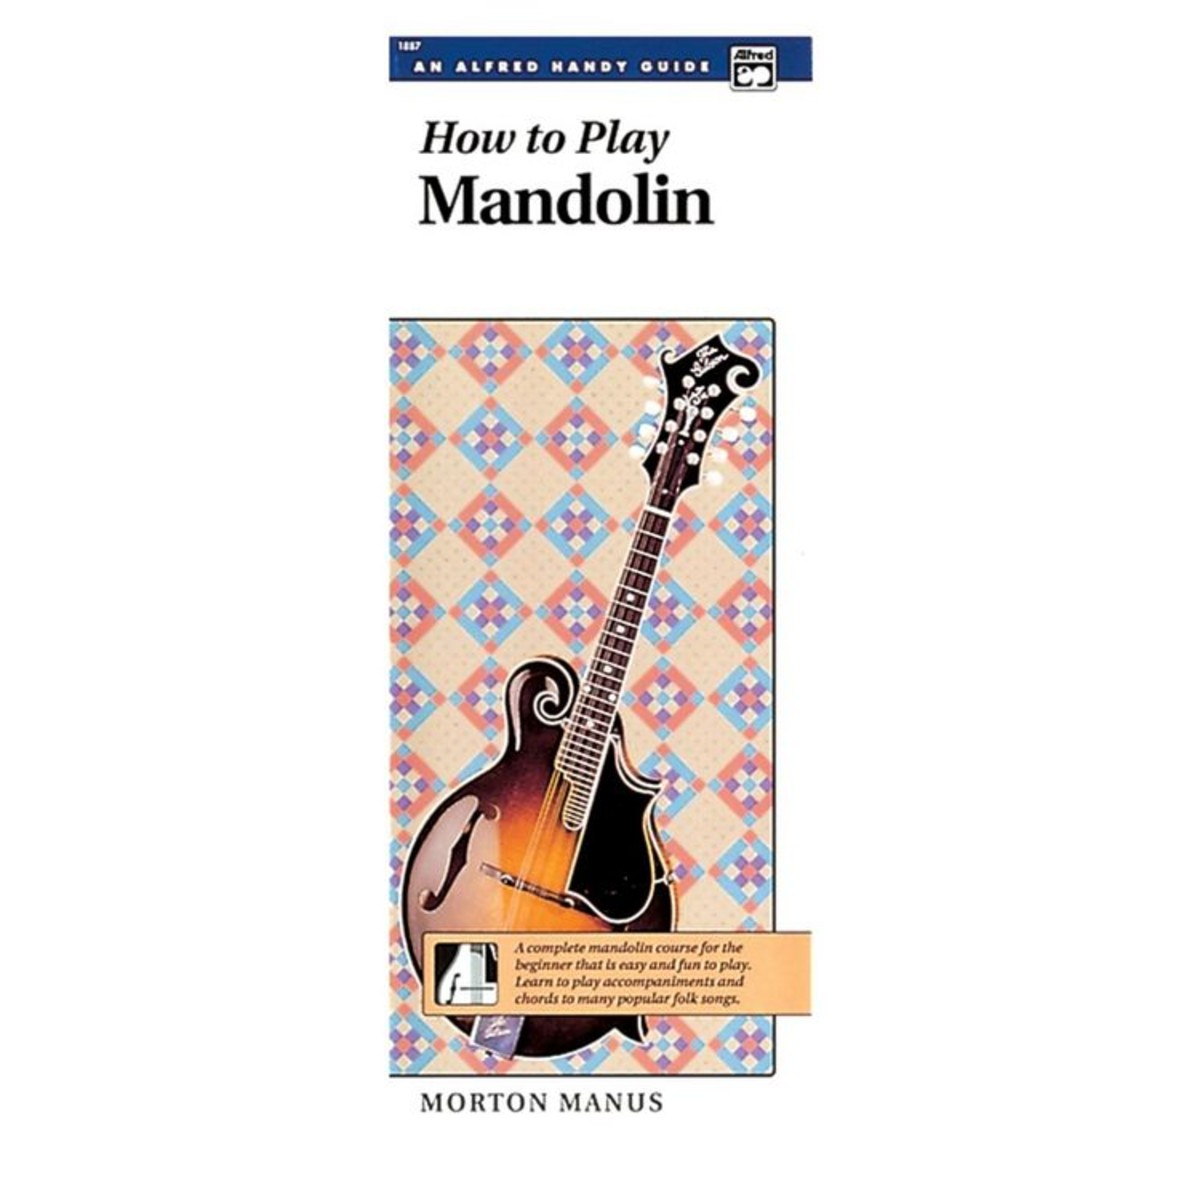 Image of How to Play Mandolin Handy Guide